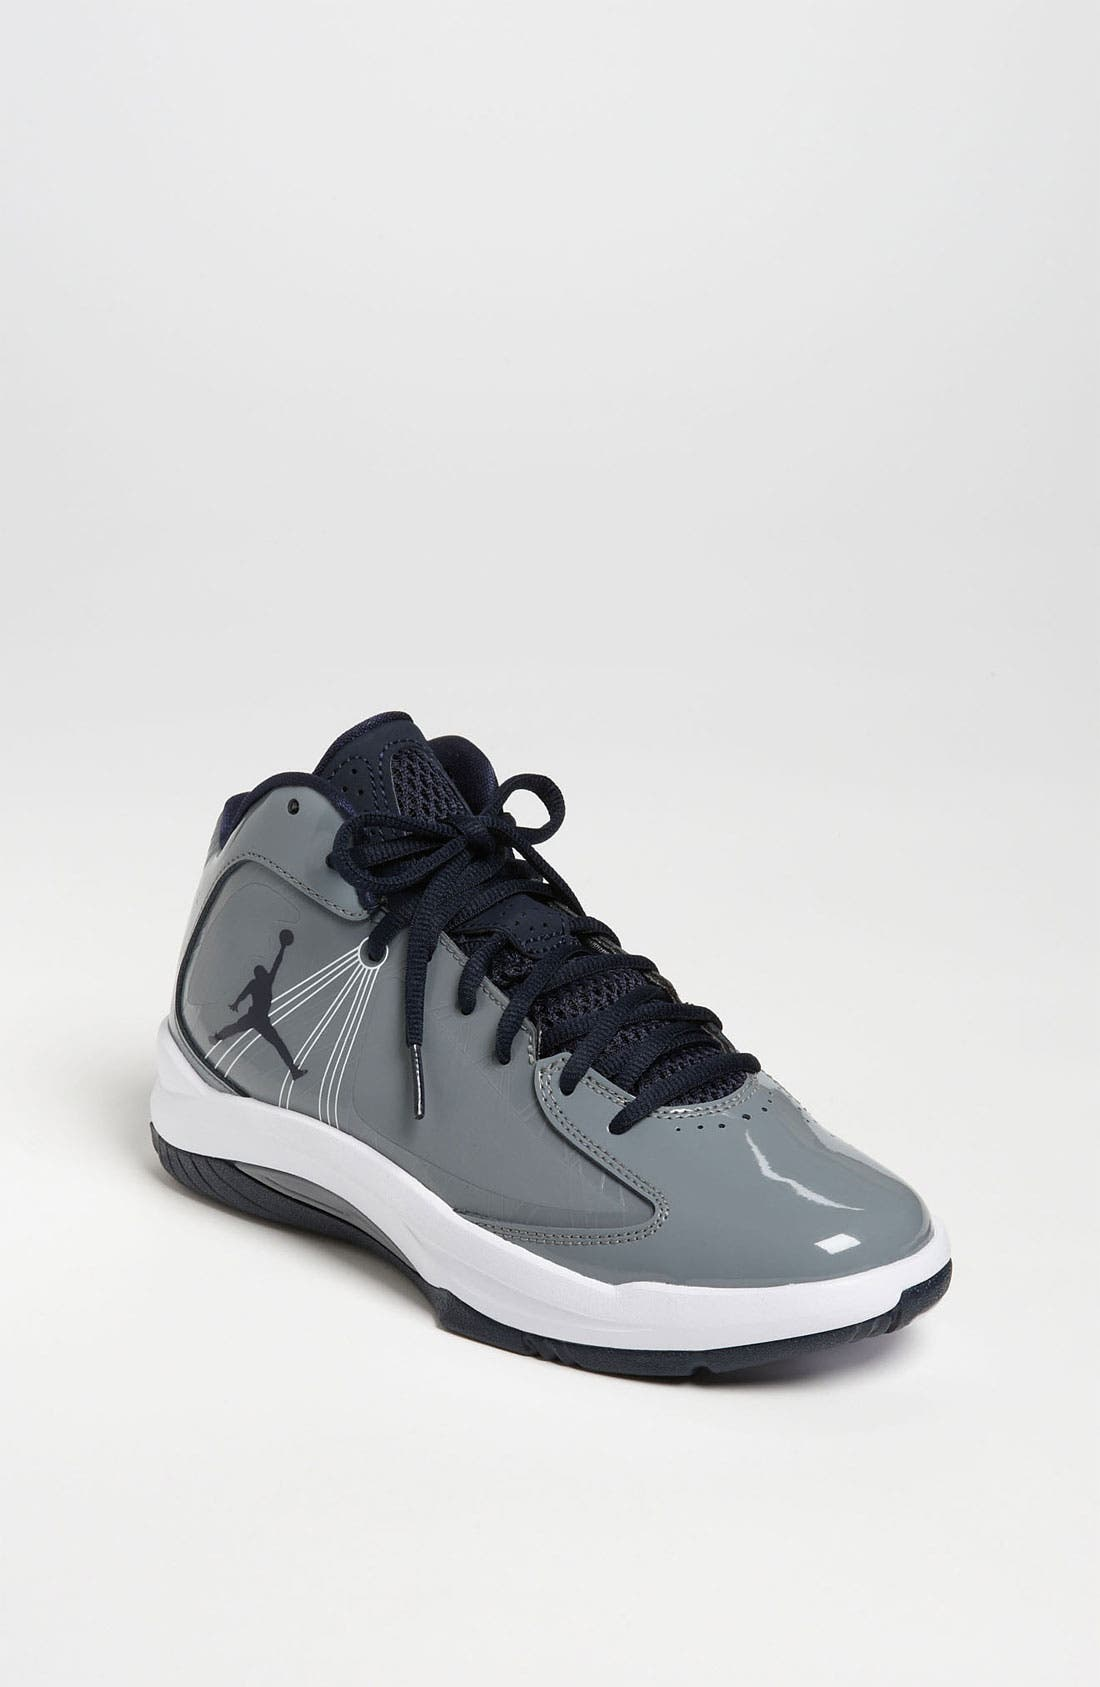 Alternate Image 1 Selected - Nike 'Jordan Aero Flight' Sneaker (Big Kid)